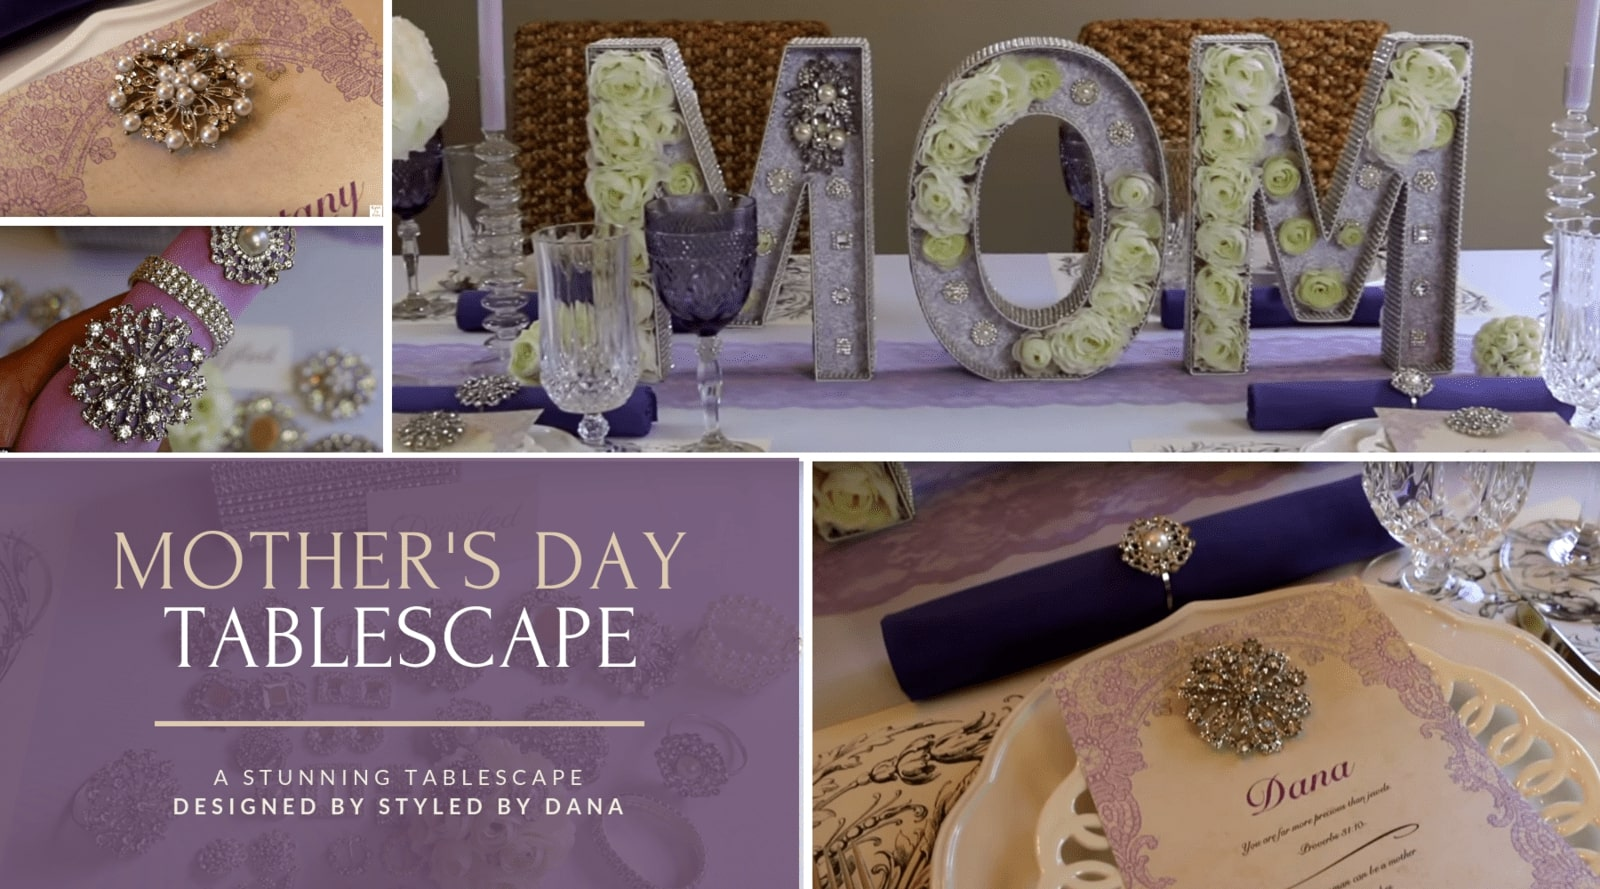 Styled by Dana Mother's Day Tablescape